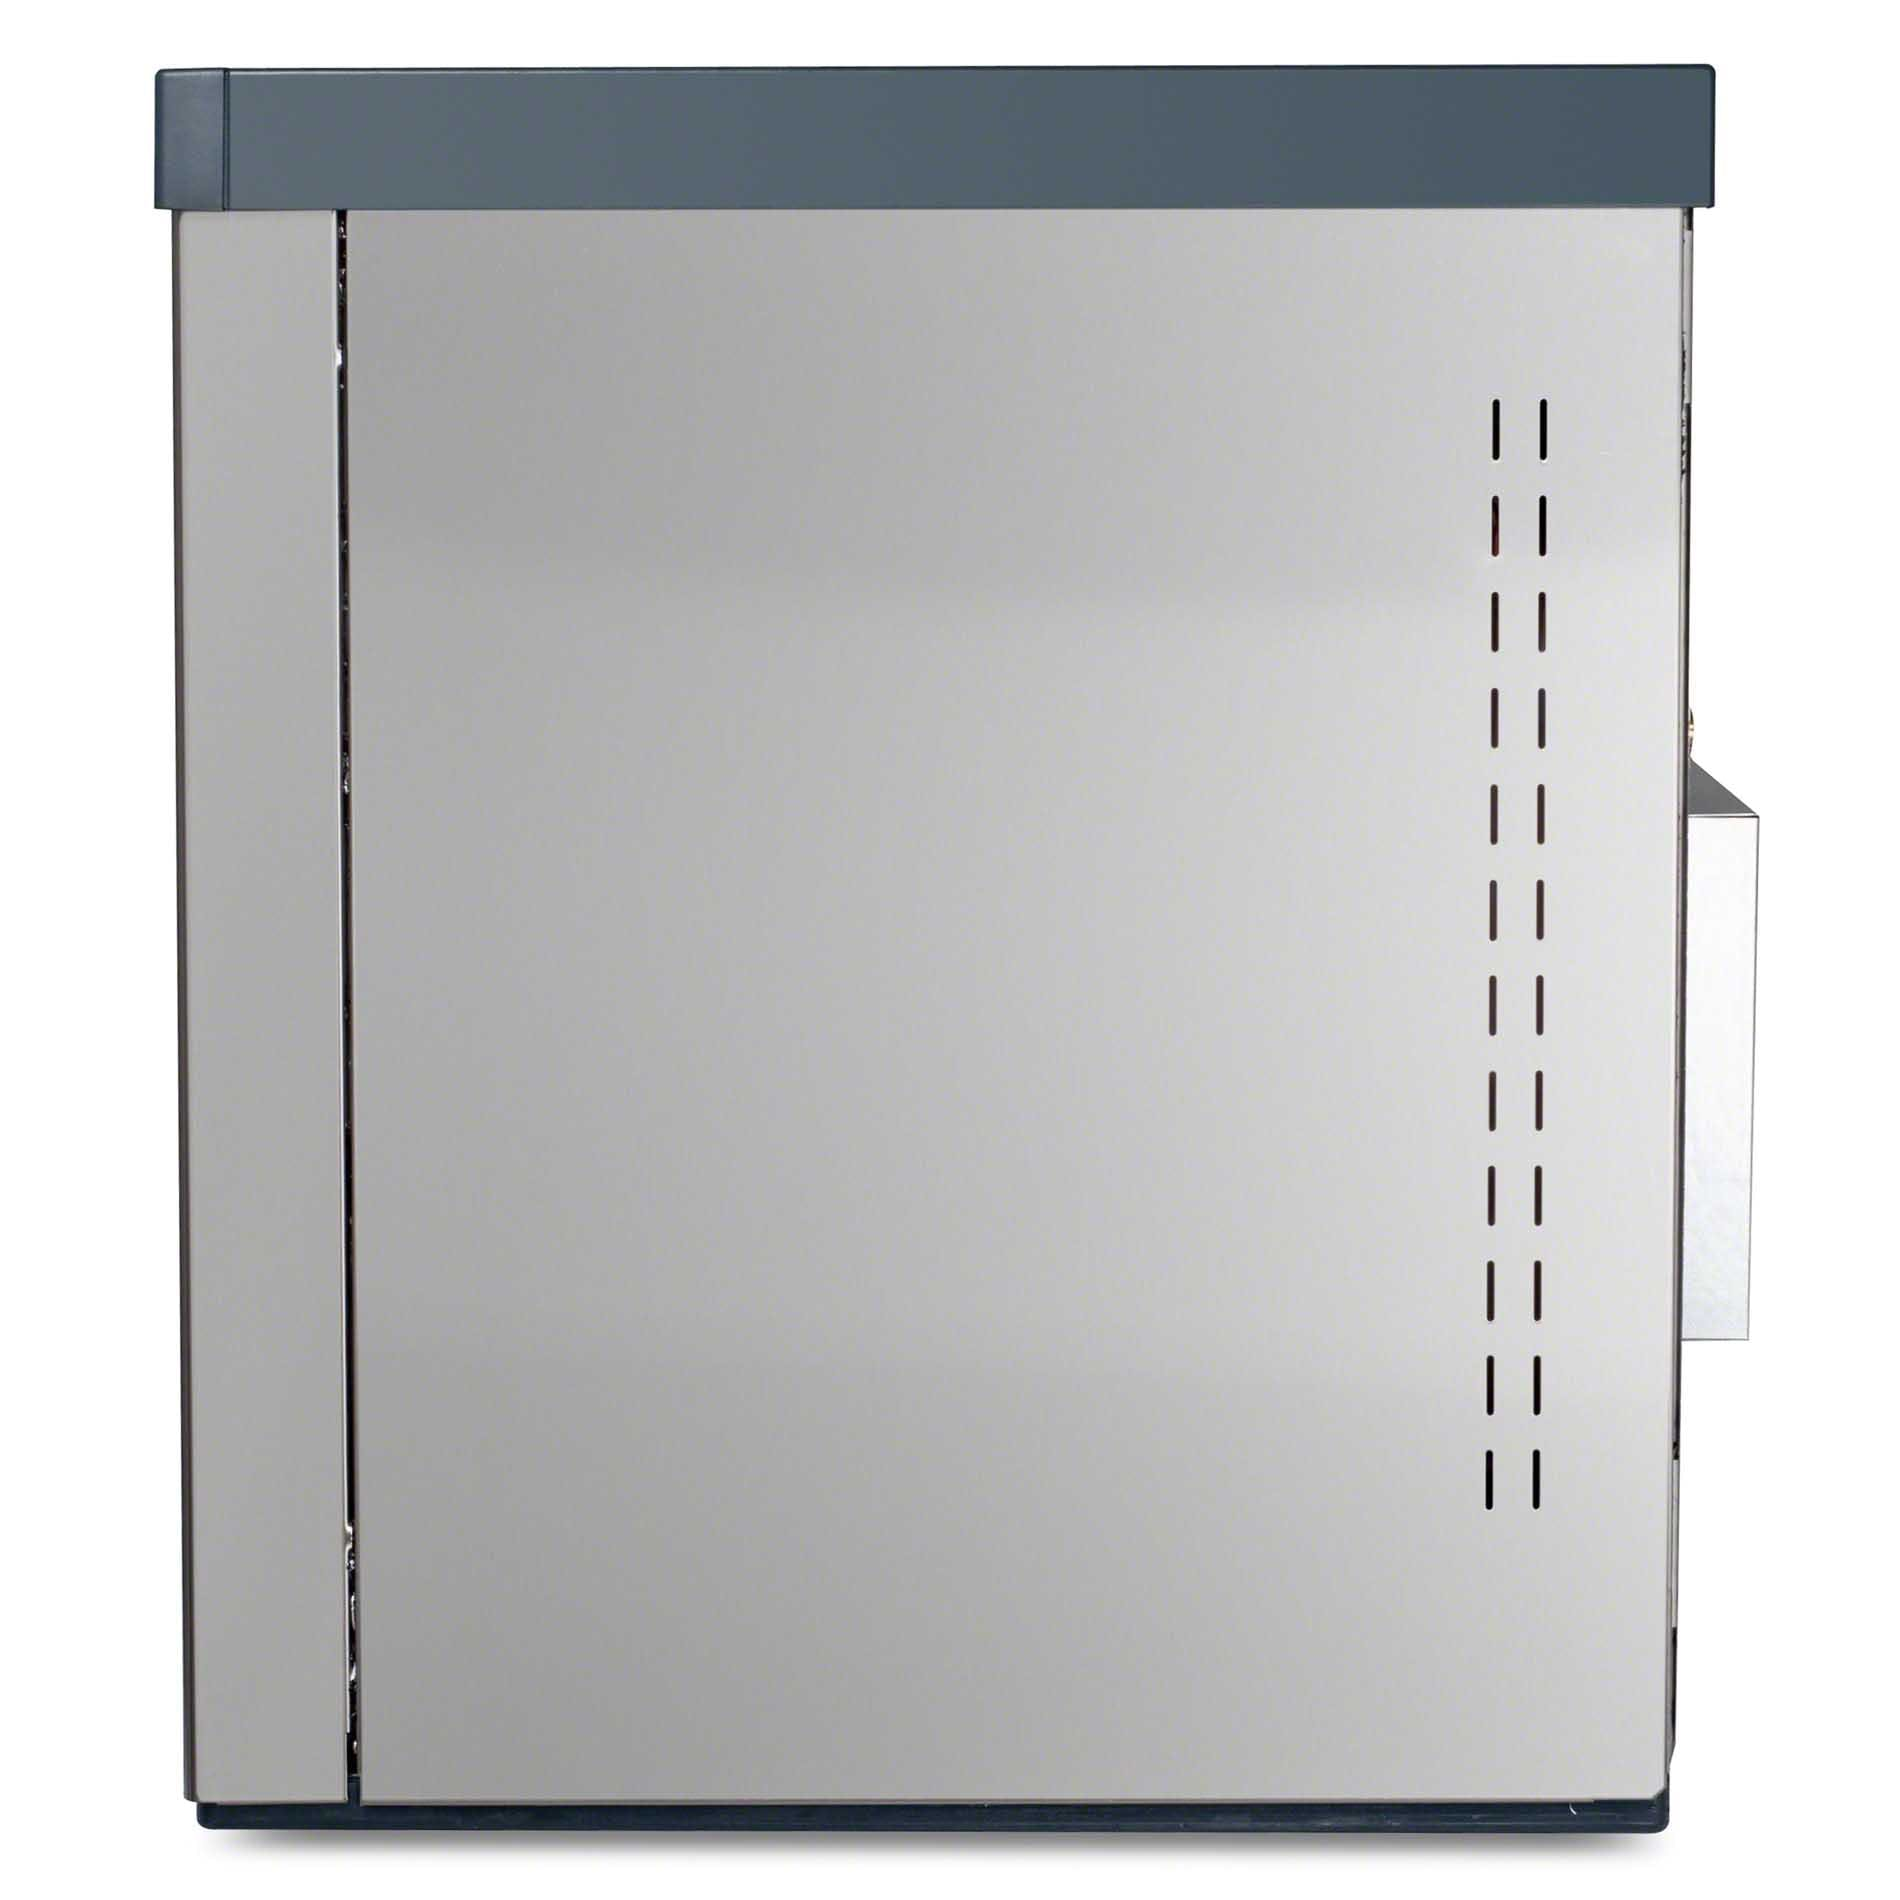 Scotsman - C1448MA-32A 1553 lb Full Size Cube Ice Machine - Prodigy Series - sold by Food Service Warehouse